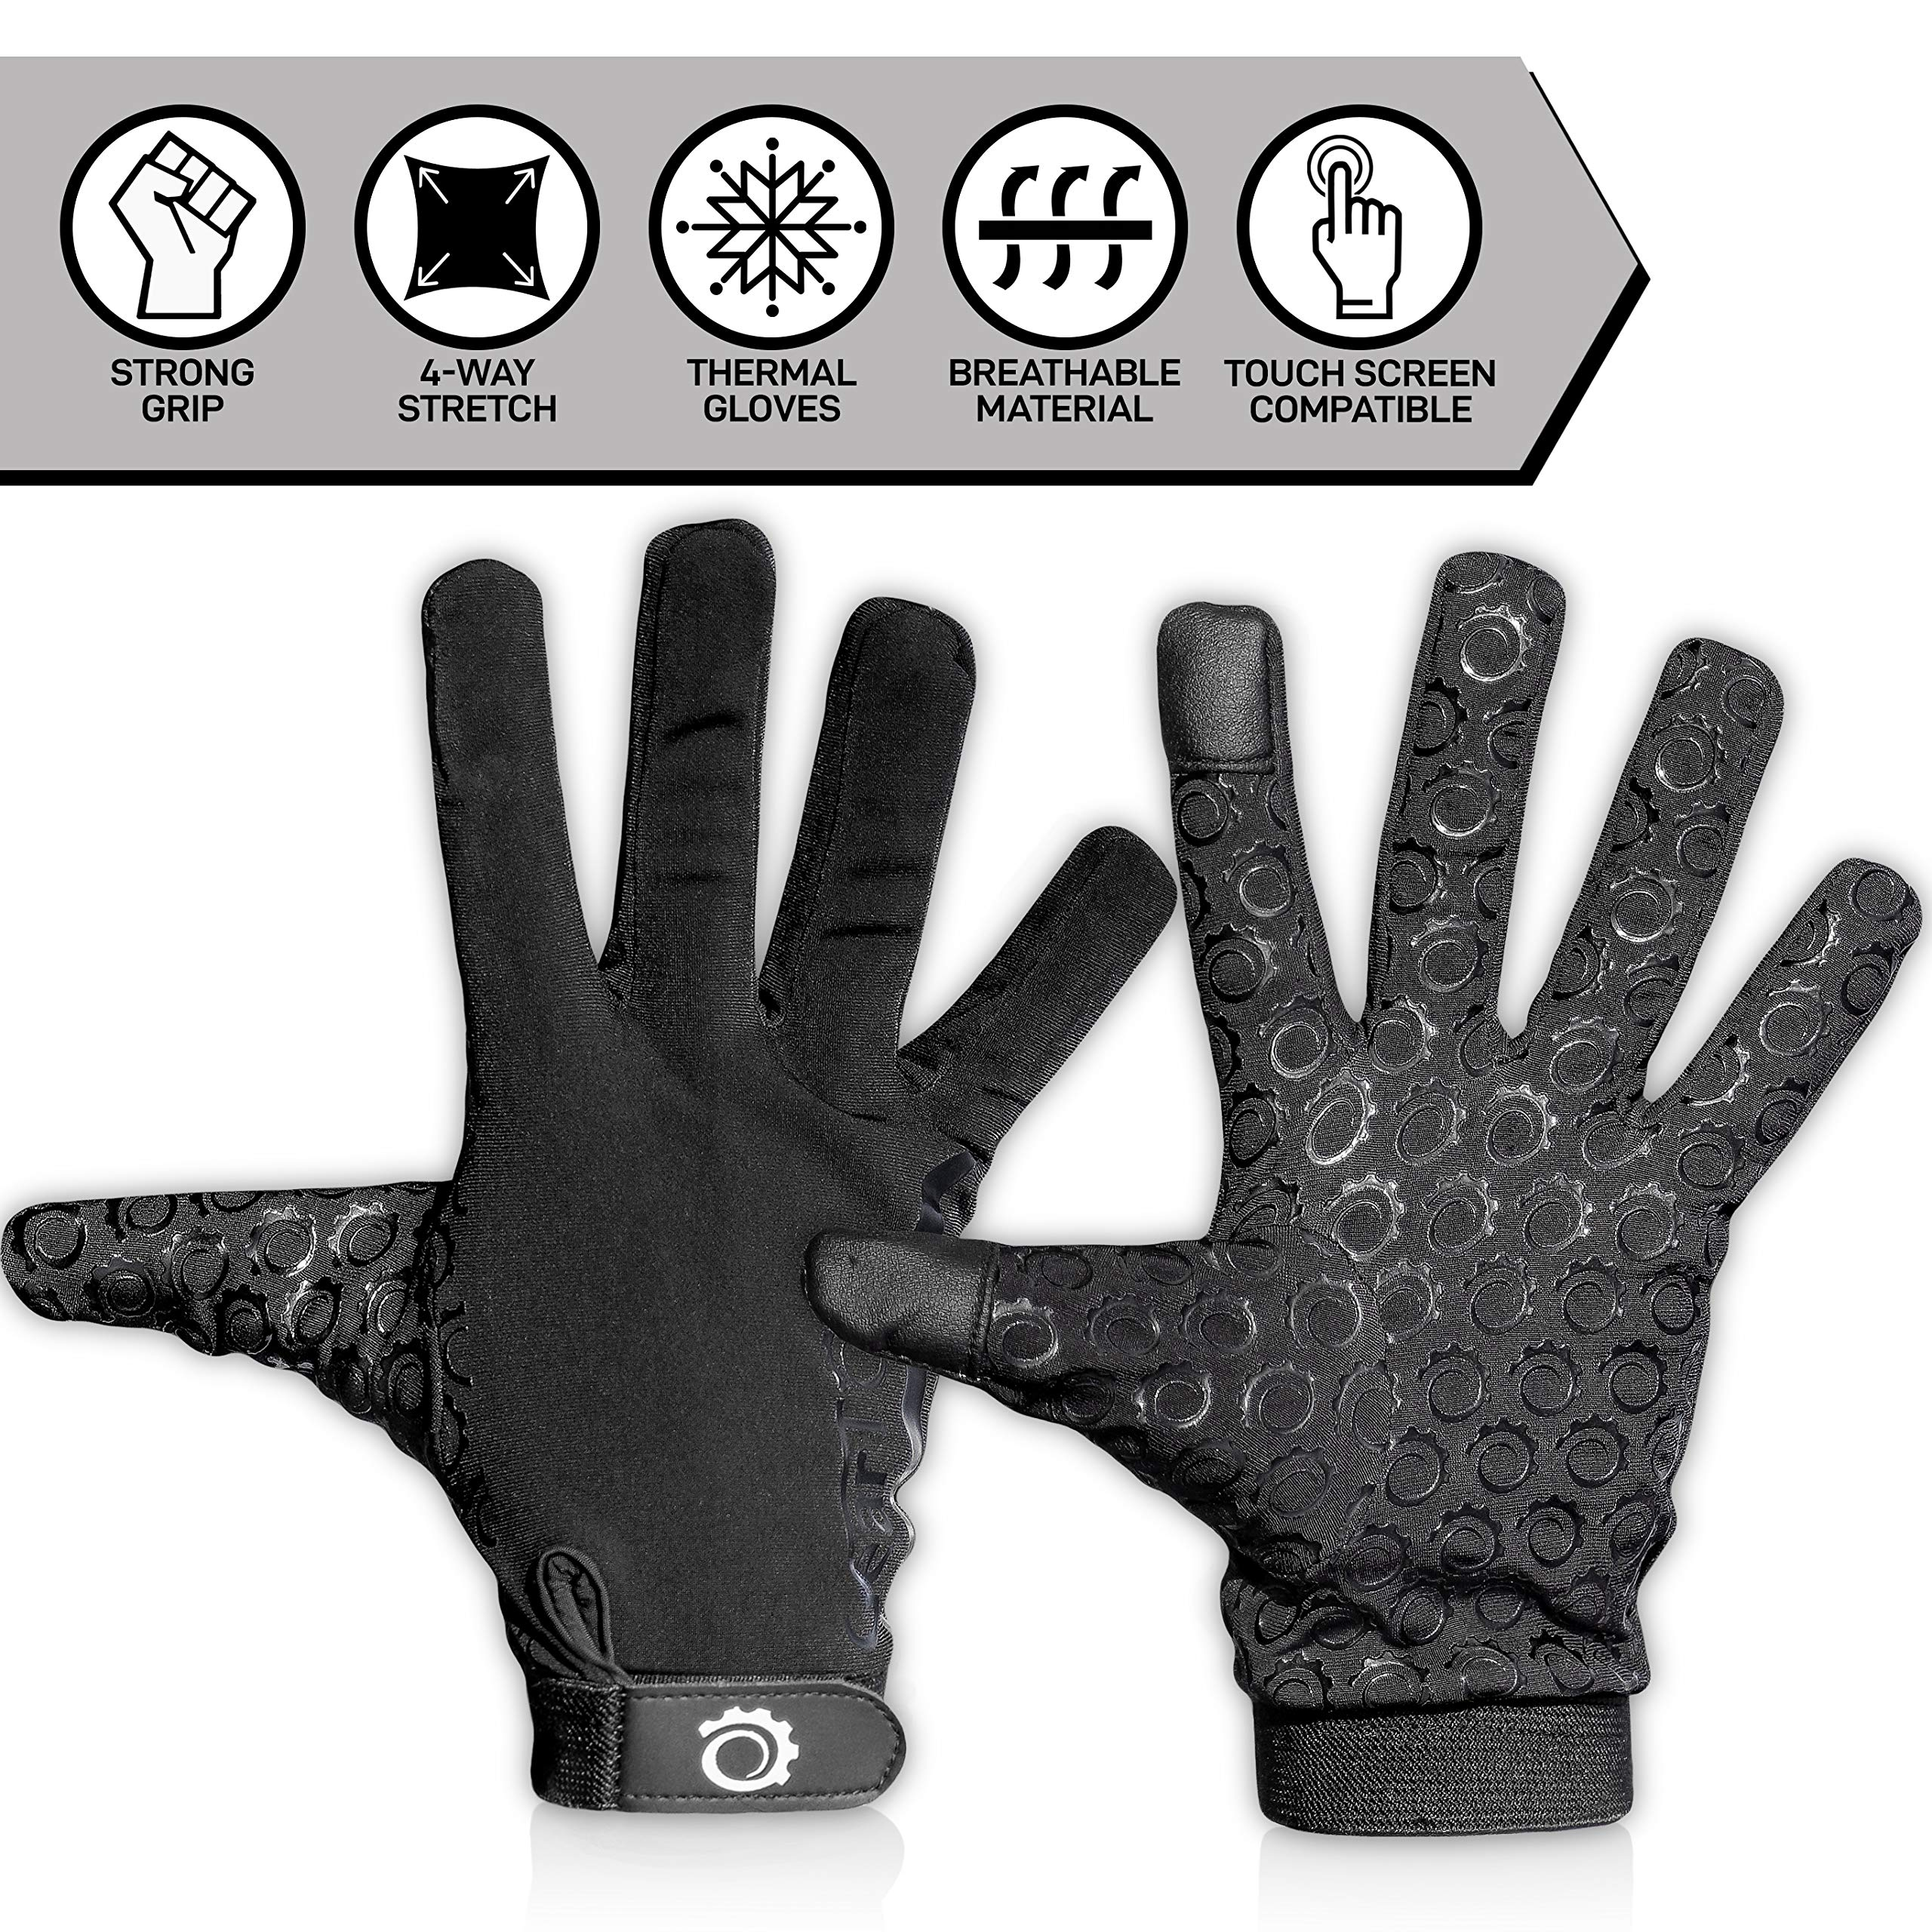 Touch Screen Gloves - Great for Running Rugby Football Walking (Black, X-Large)